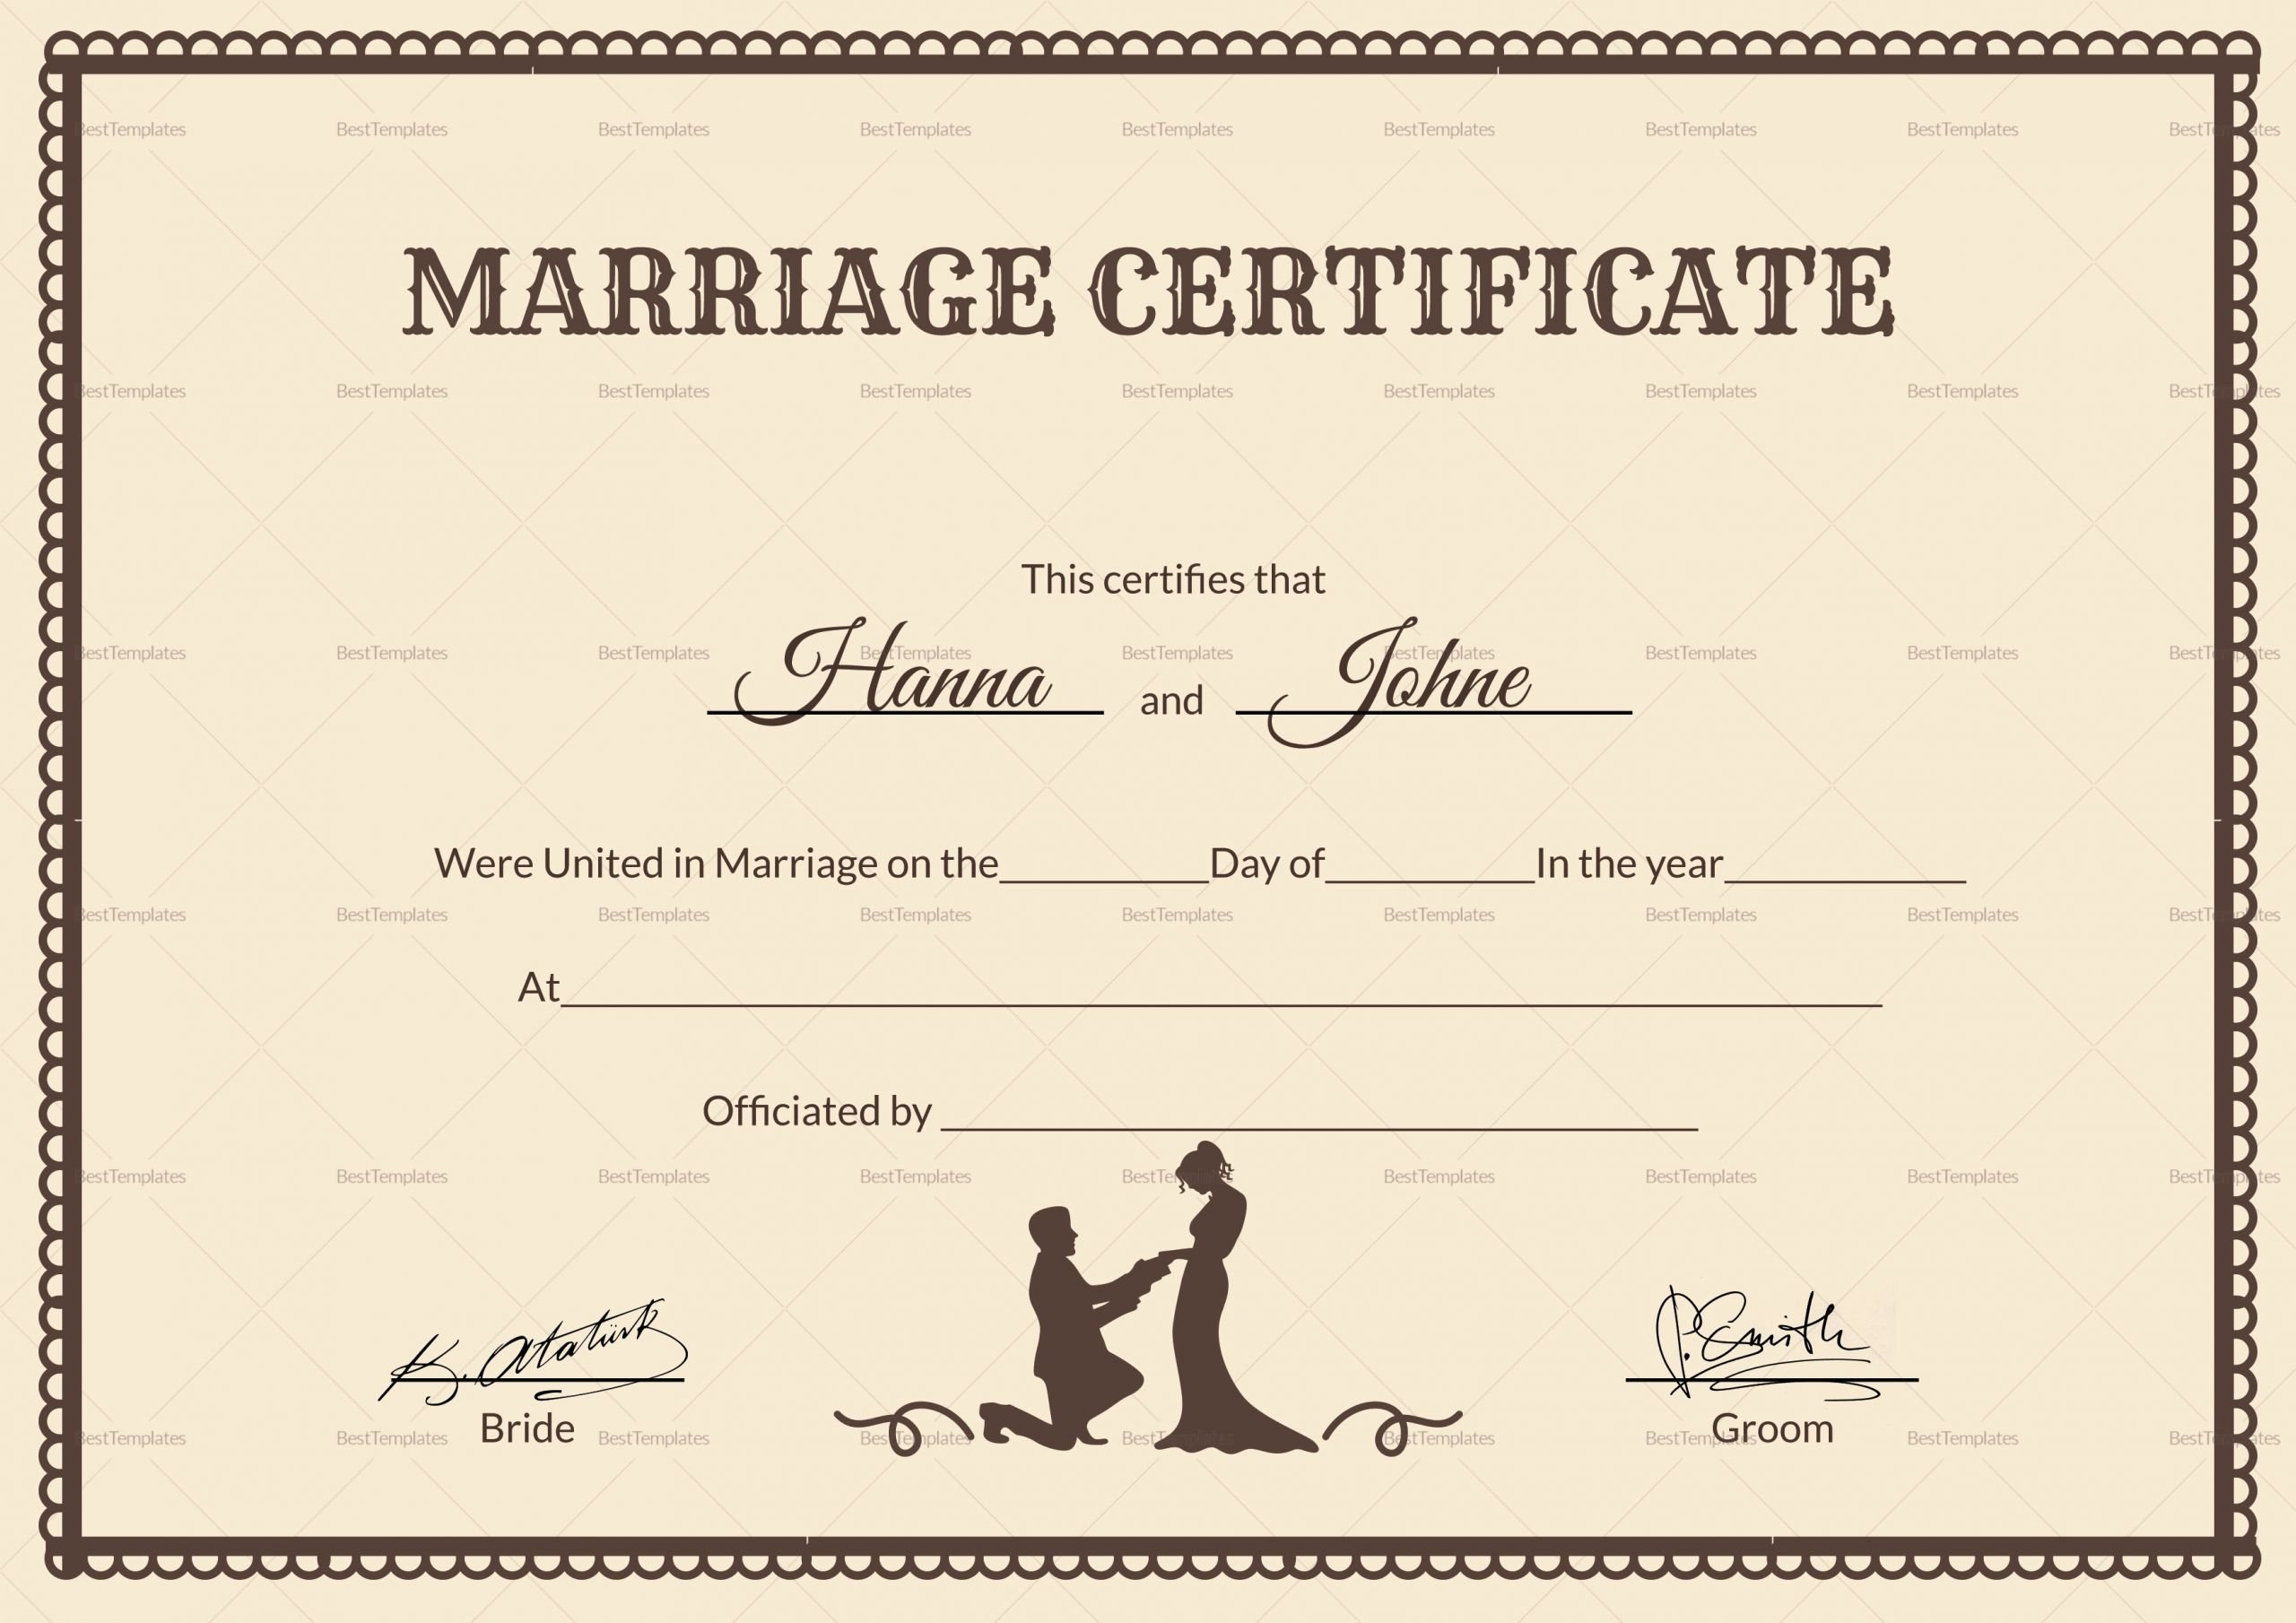 Microsoft Office Marriage Certificate Template Luxury Vintage Marriage Certificate Design Template In Psd Word